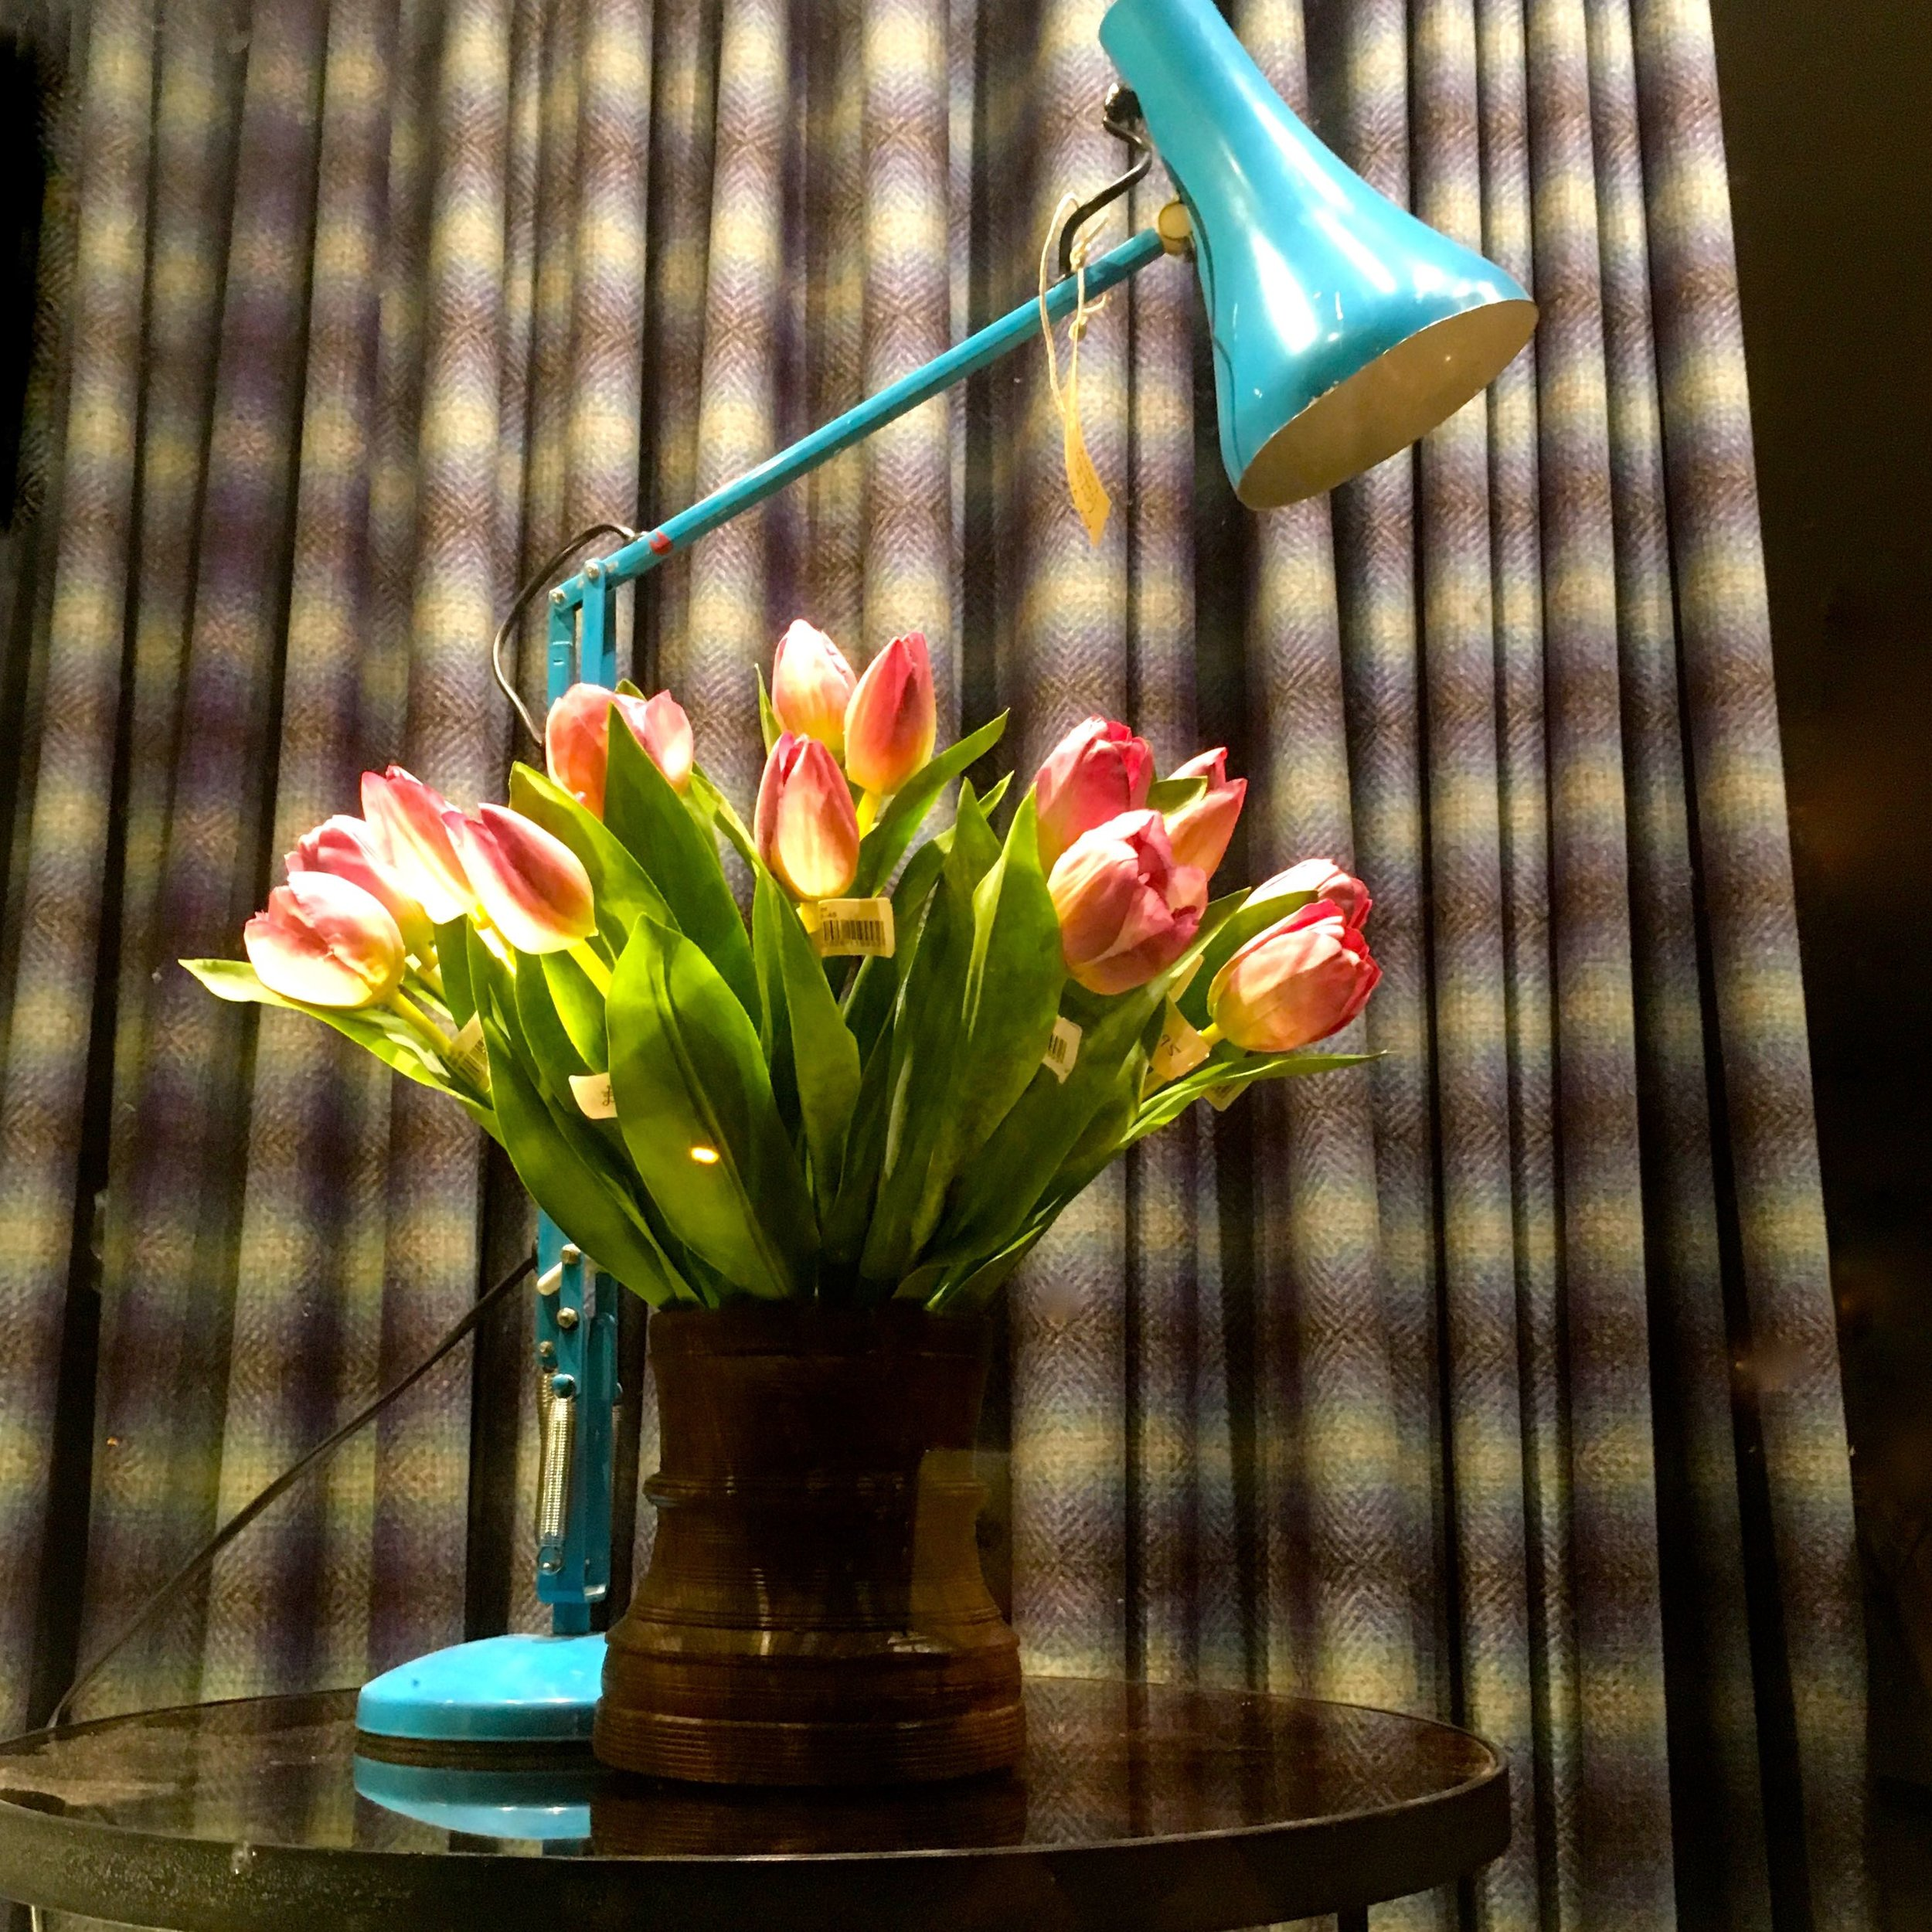 A turquoise anglepoise lamp and faux tulips, with a tartan curtain